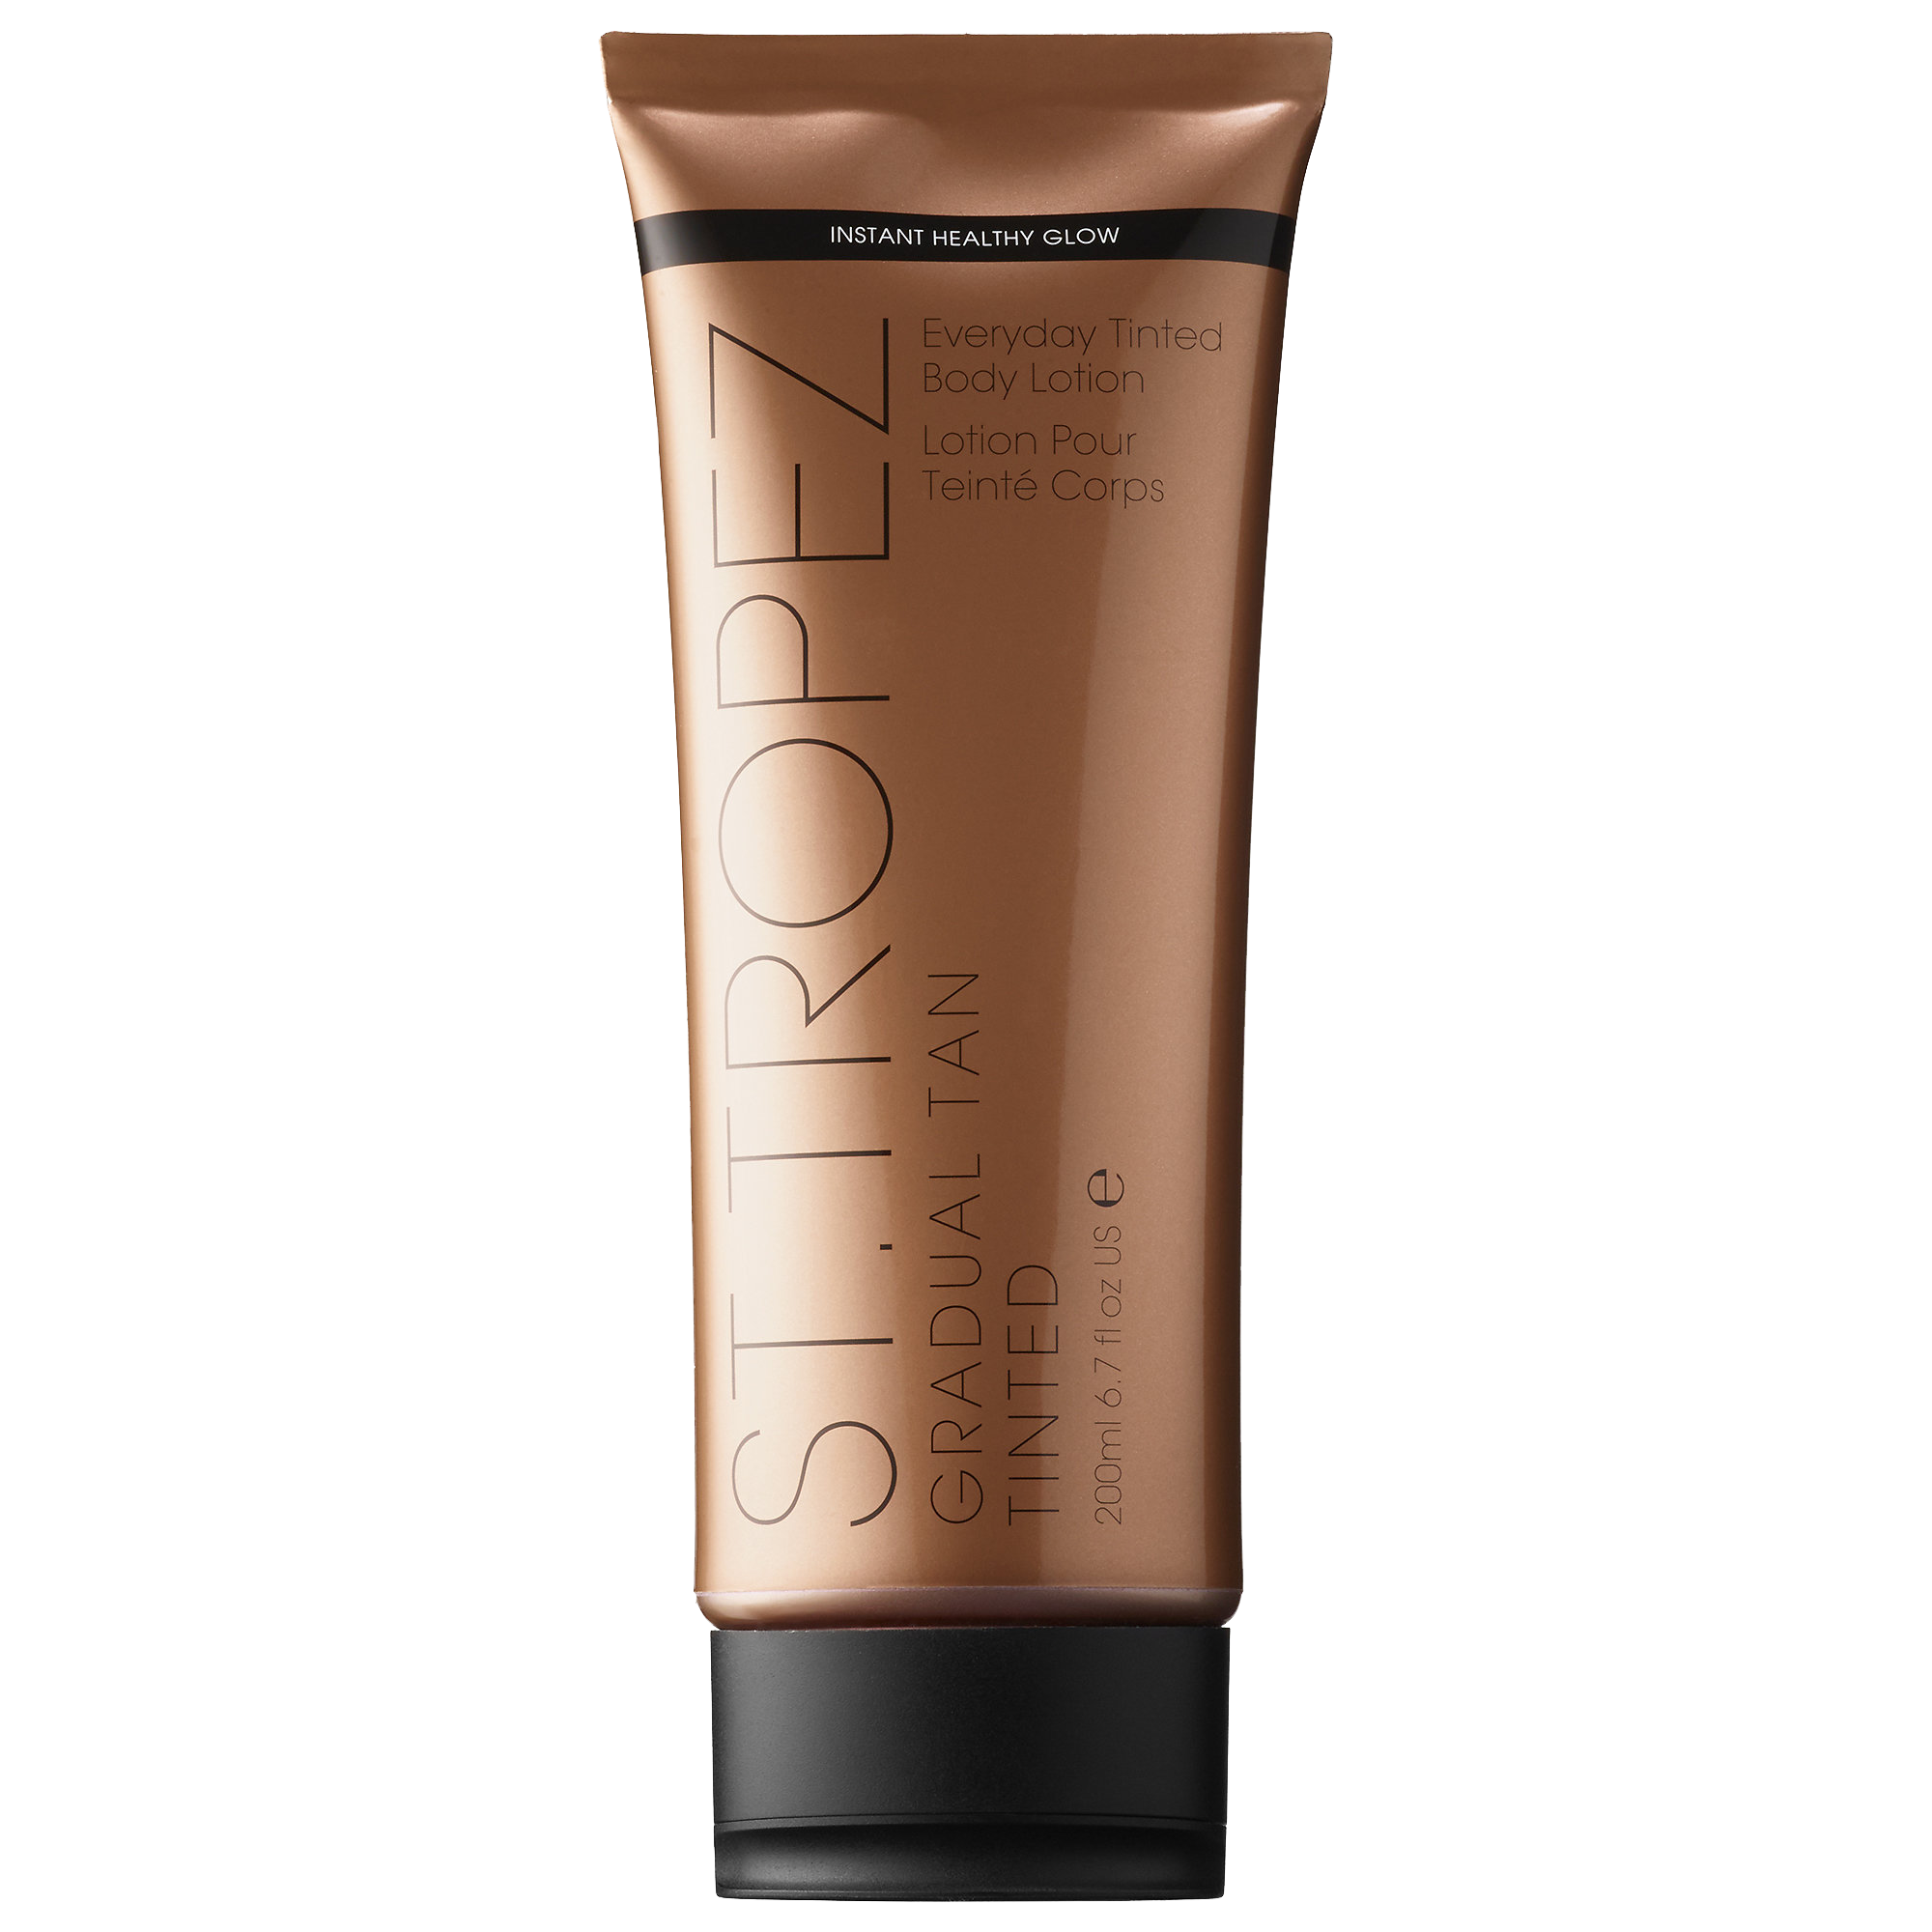 St. Tropez Gradual Tan Tinted Everyday Body Lotion